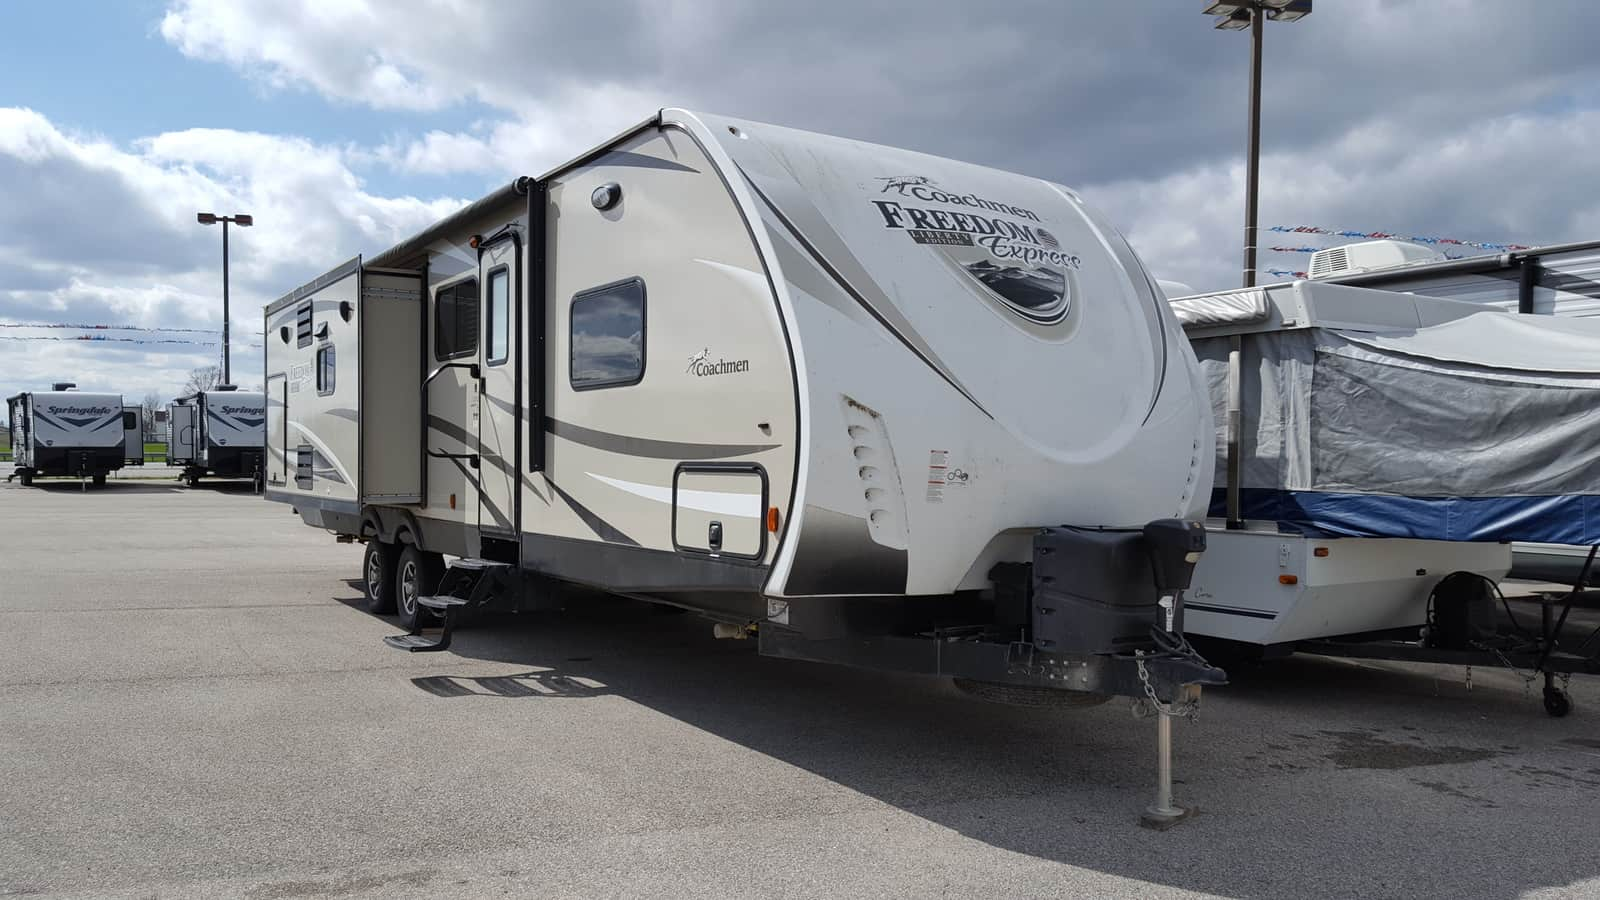 USED 2016 Coachmen FREEDOM EXPRESS 322RLDSLE - American RV